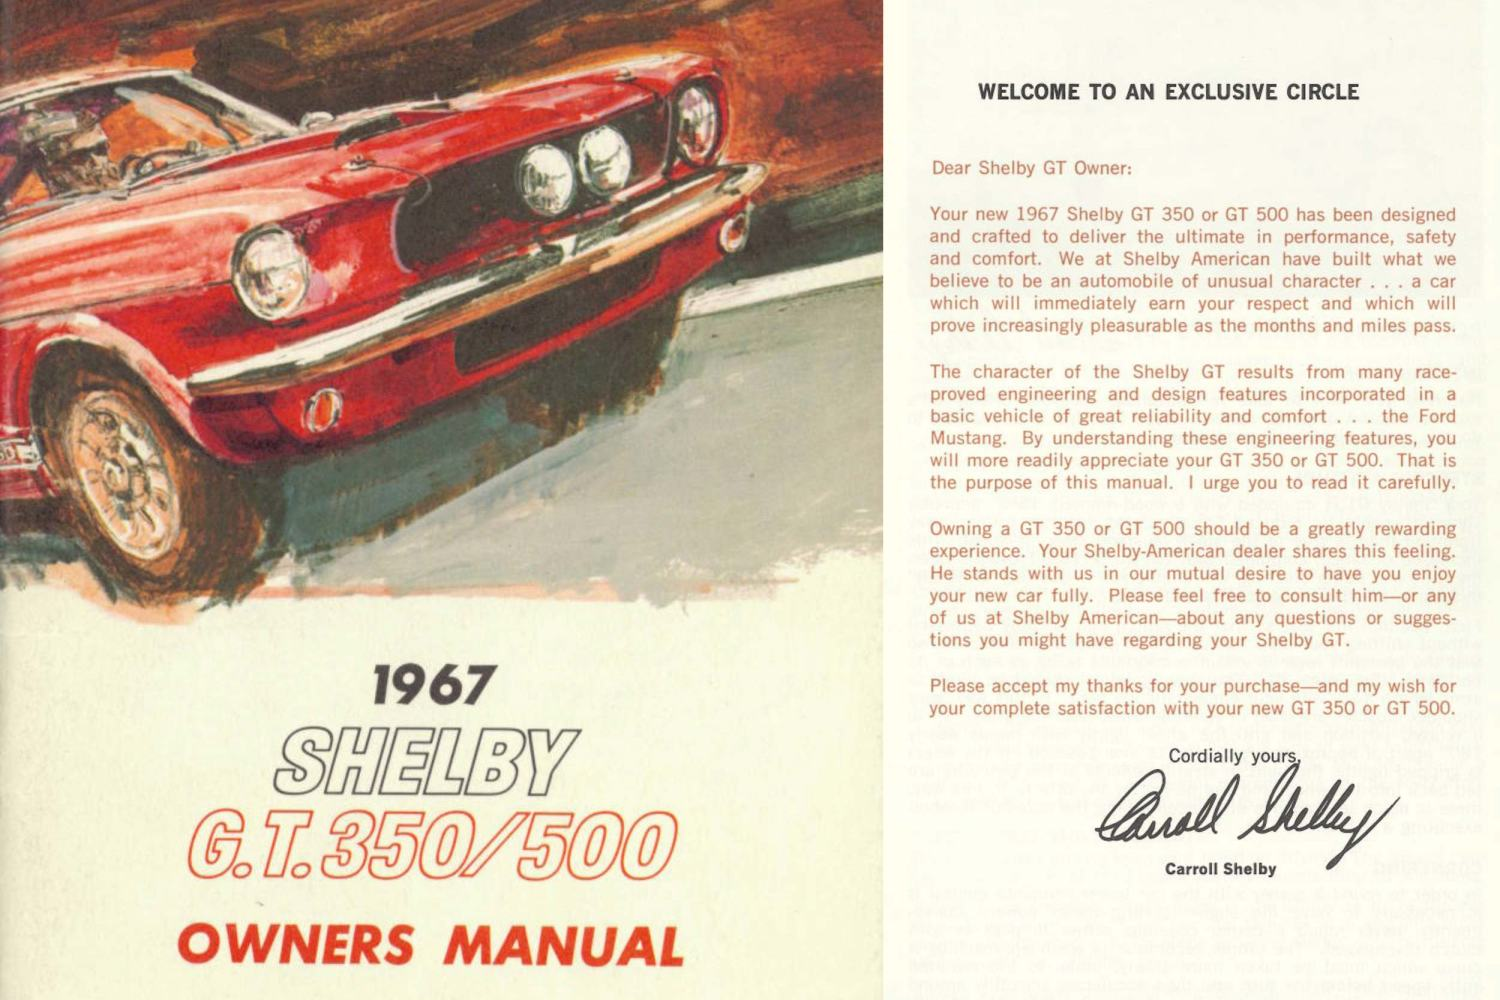 1967 Shelby owners guide